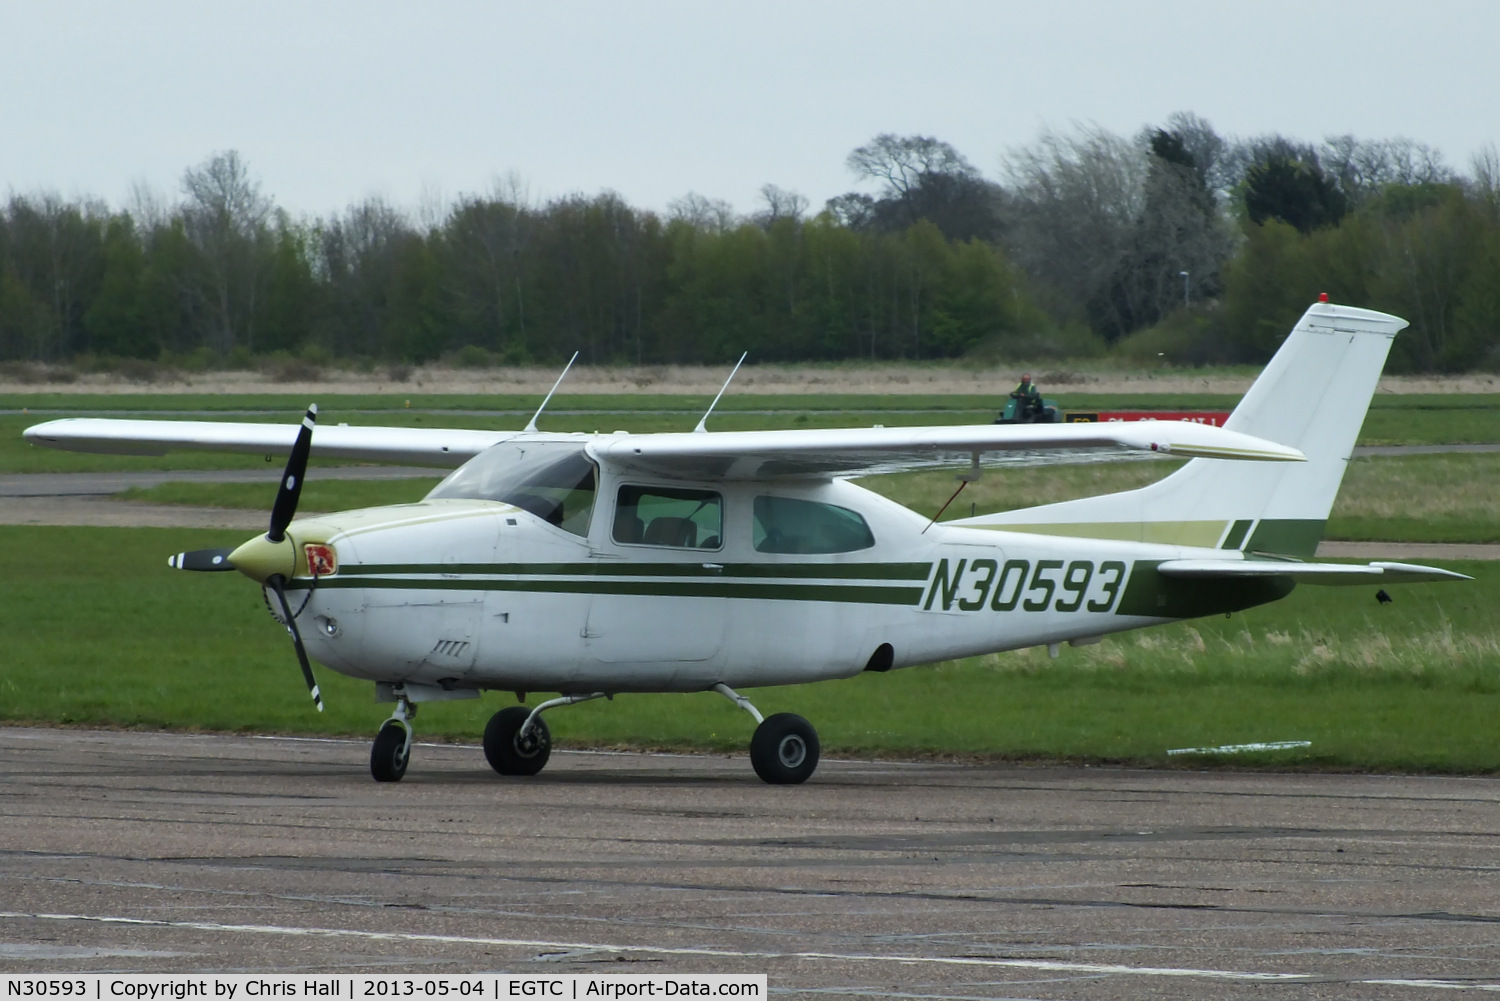 N30593, 1973 Cessna 210L Centurion C/N 21059938, privately owned